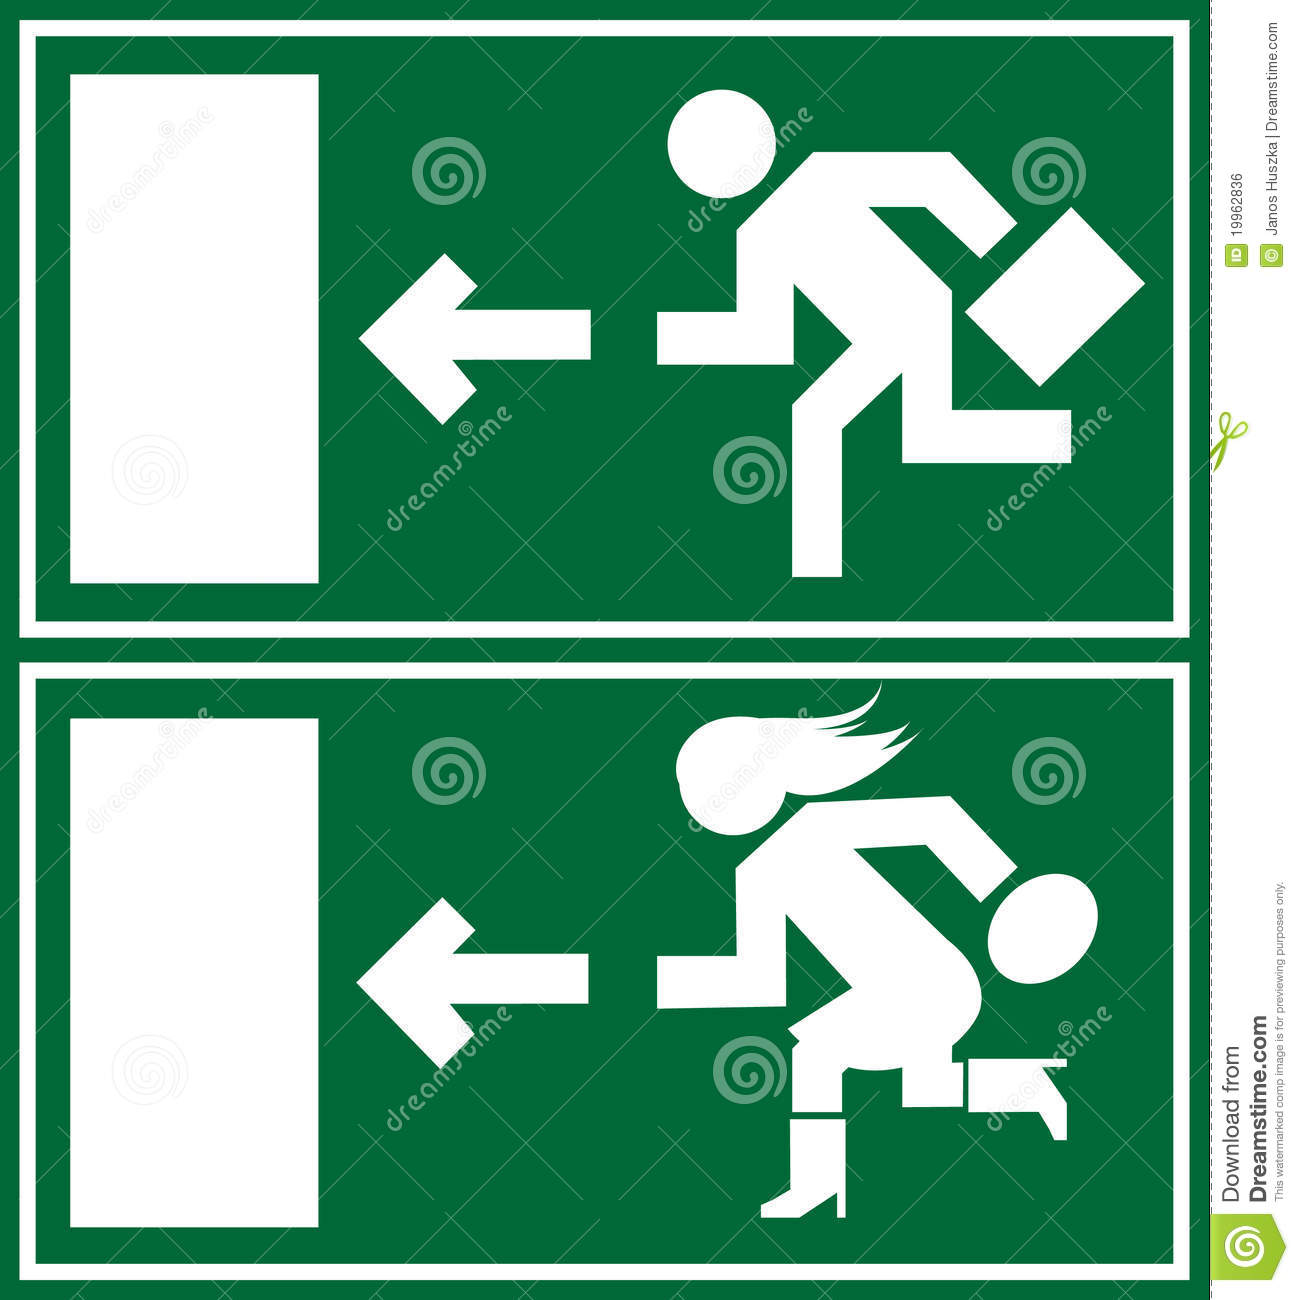 Green emergency exit sign icon and symbol stock vector green emergency exit sign icon and symbol buycottarizona Images